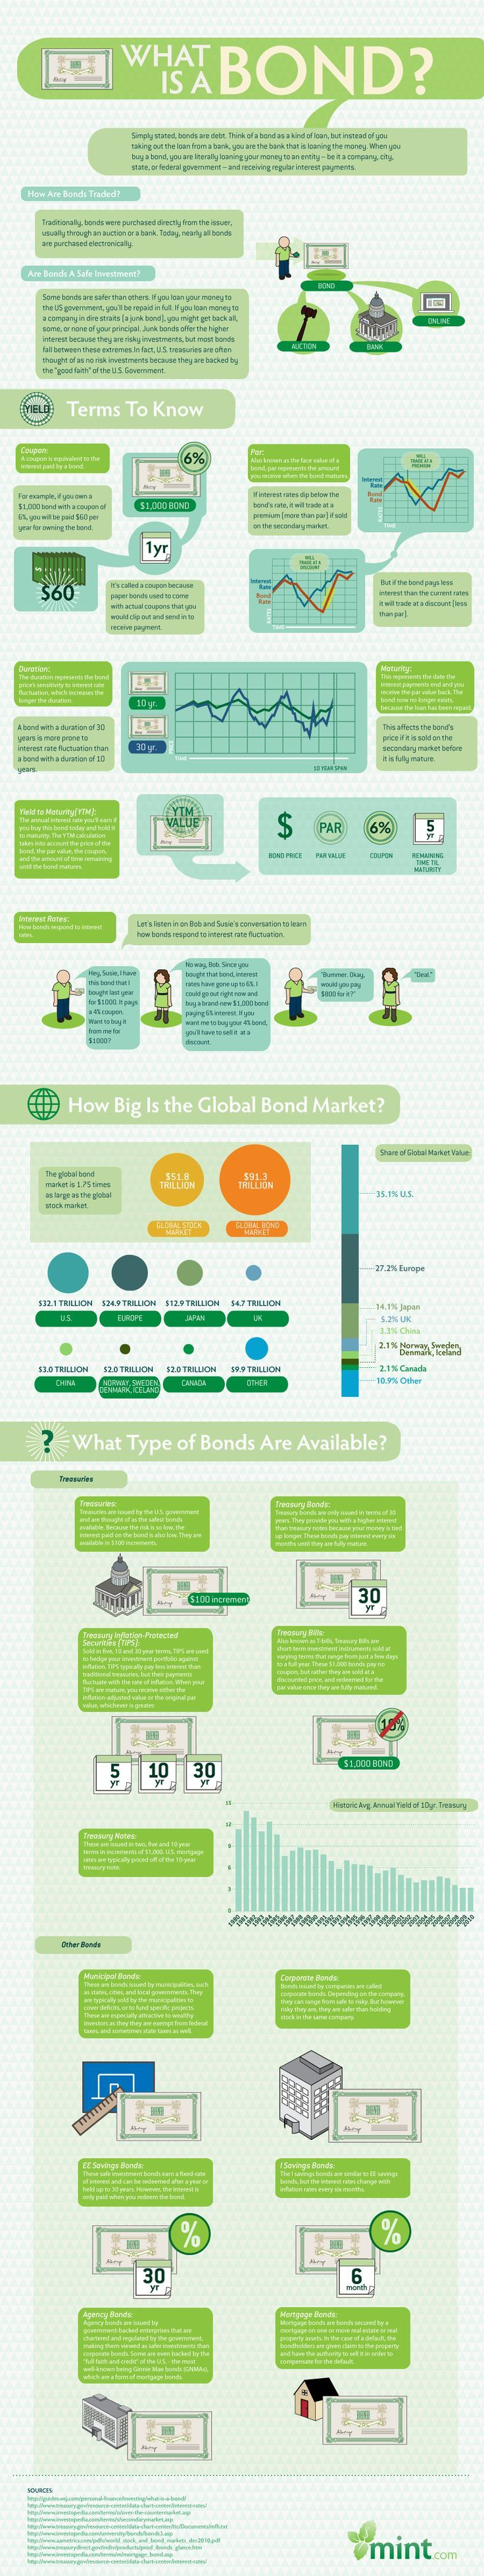 Great infographic from http://Mint.com discussing what a bond is.